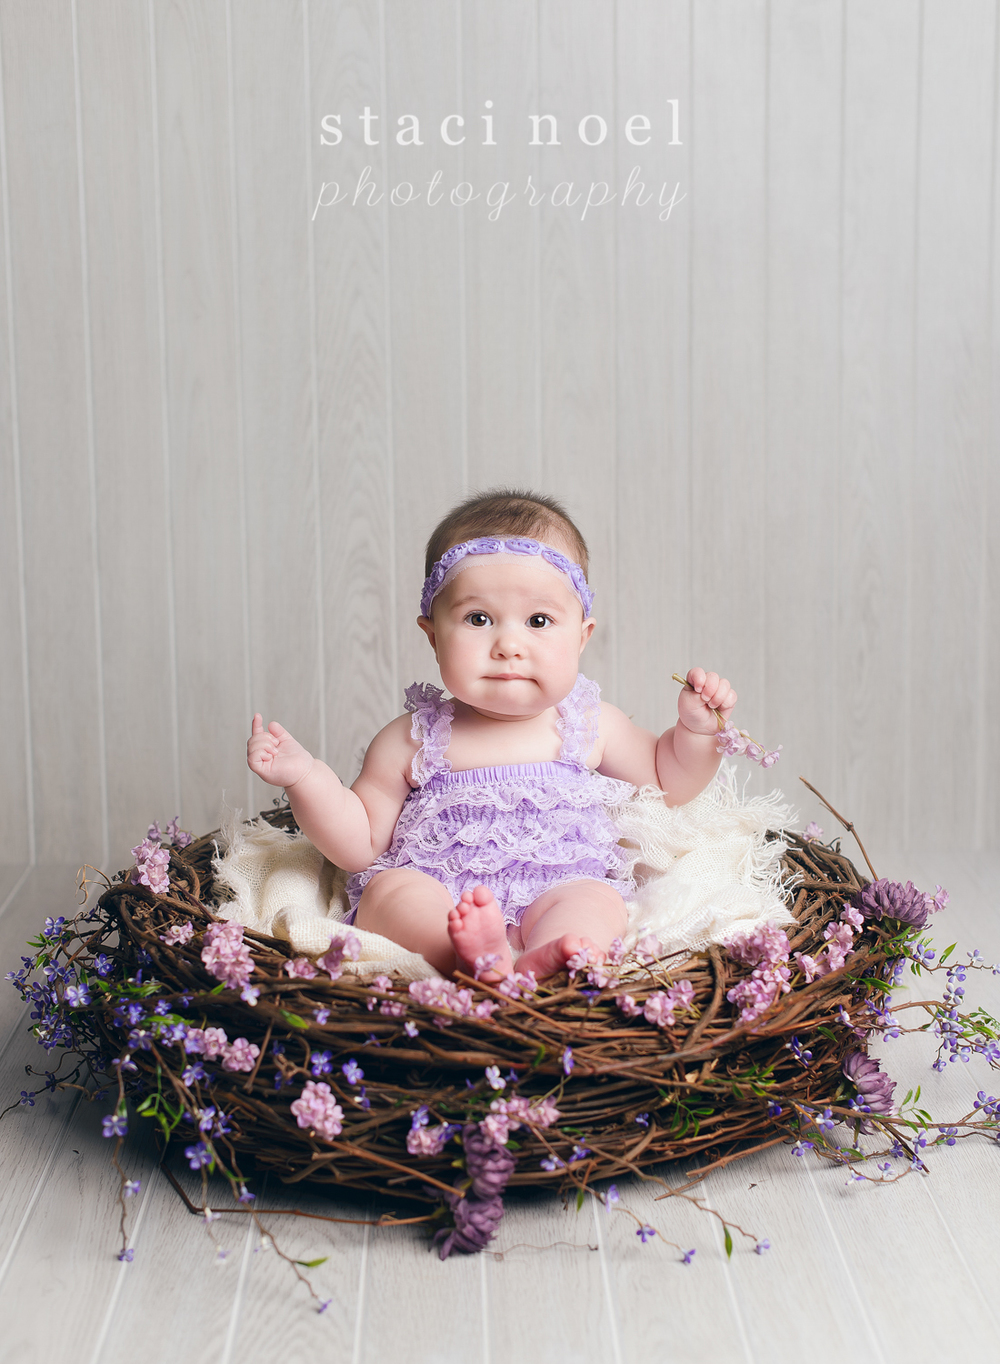 Charlotte NC Newborn & Baby Photographer | Staci Noel Photography2.jpg